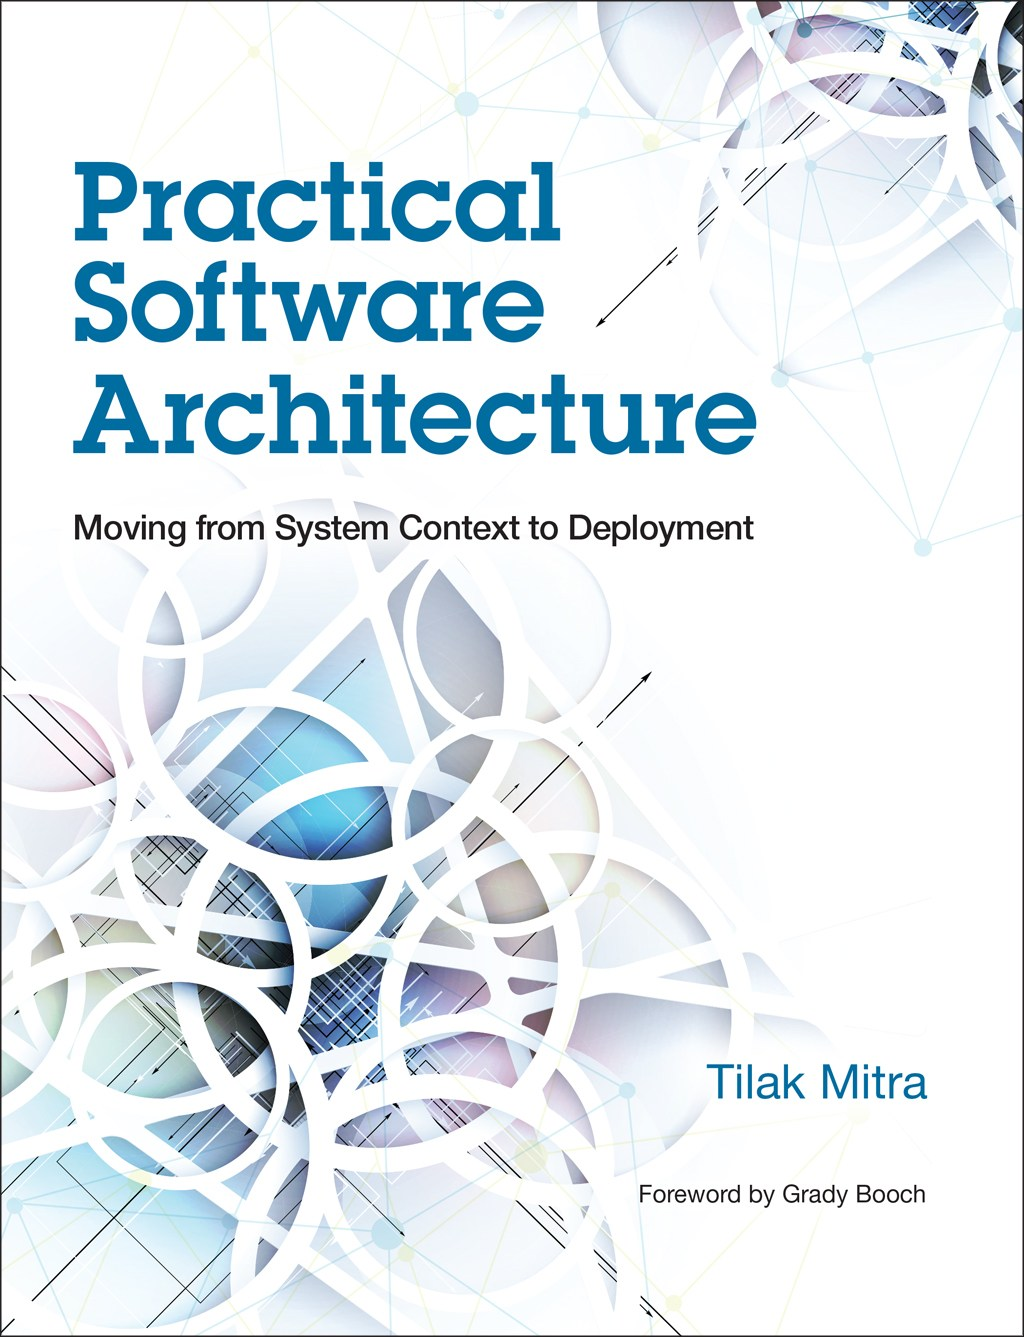 Practical Software Architecture: Moving from System Context to Deployment